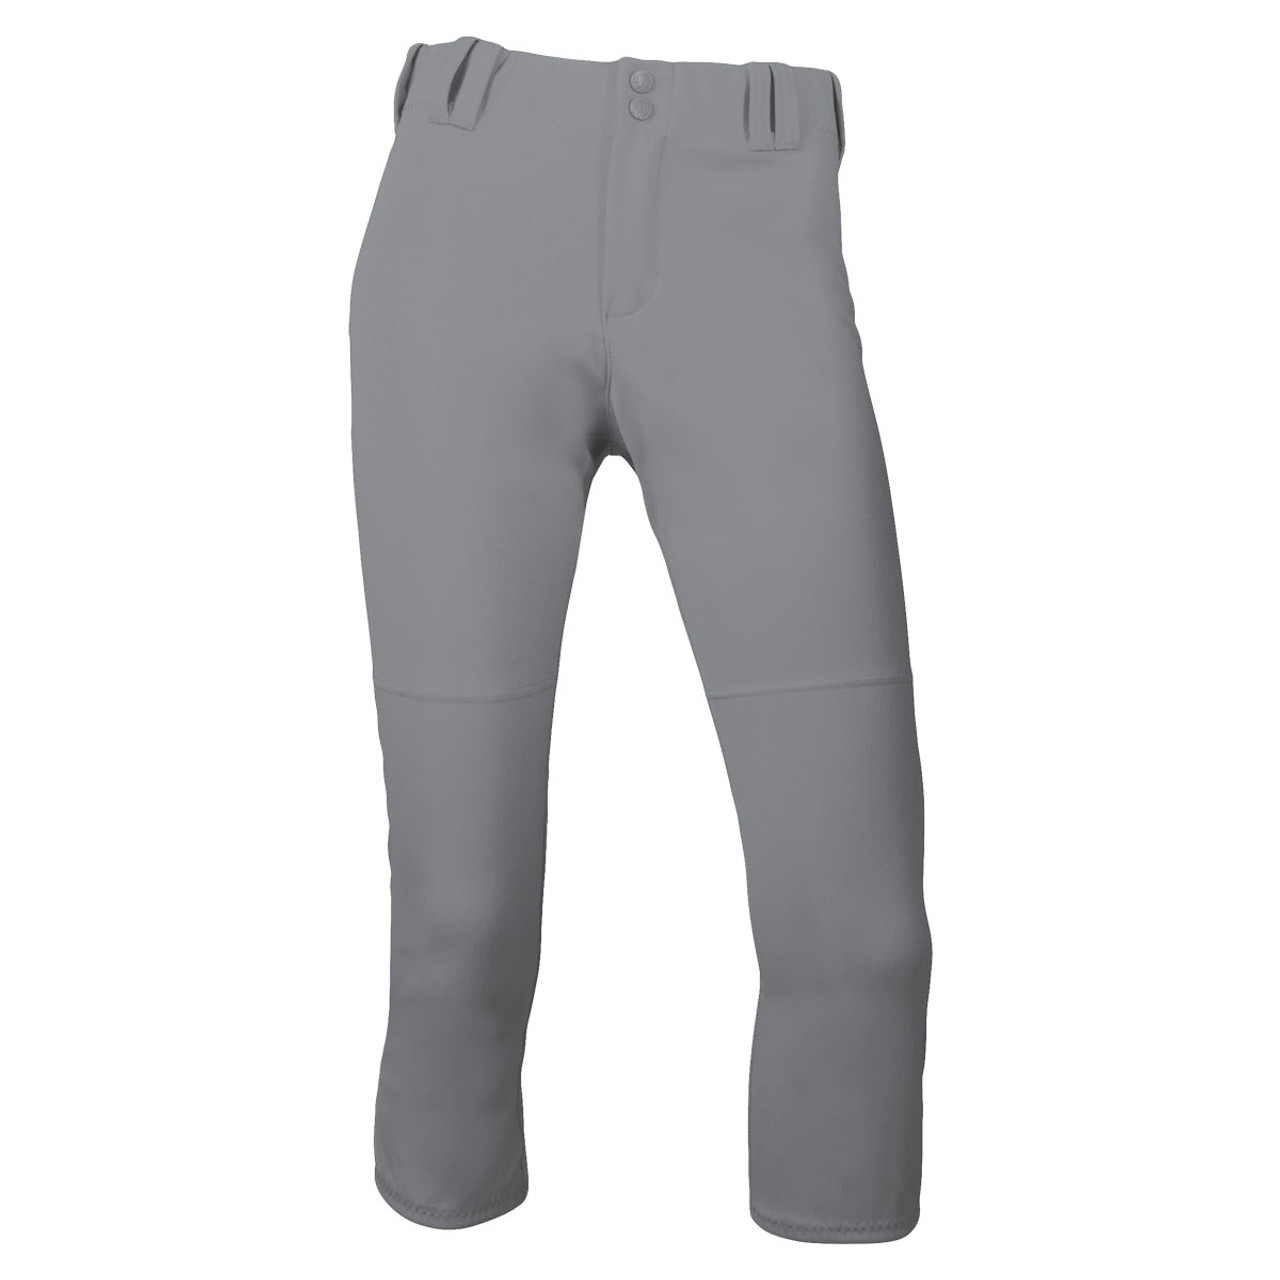 ADULT sizes Intensity BY SOFFE N5300 Women/'s Low Rise Softball Fastpitch Pants